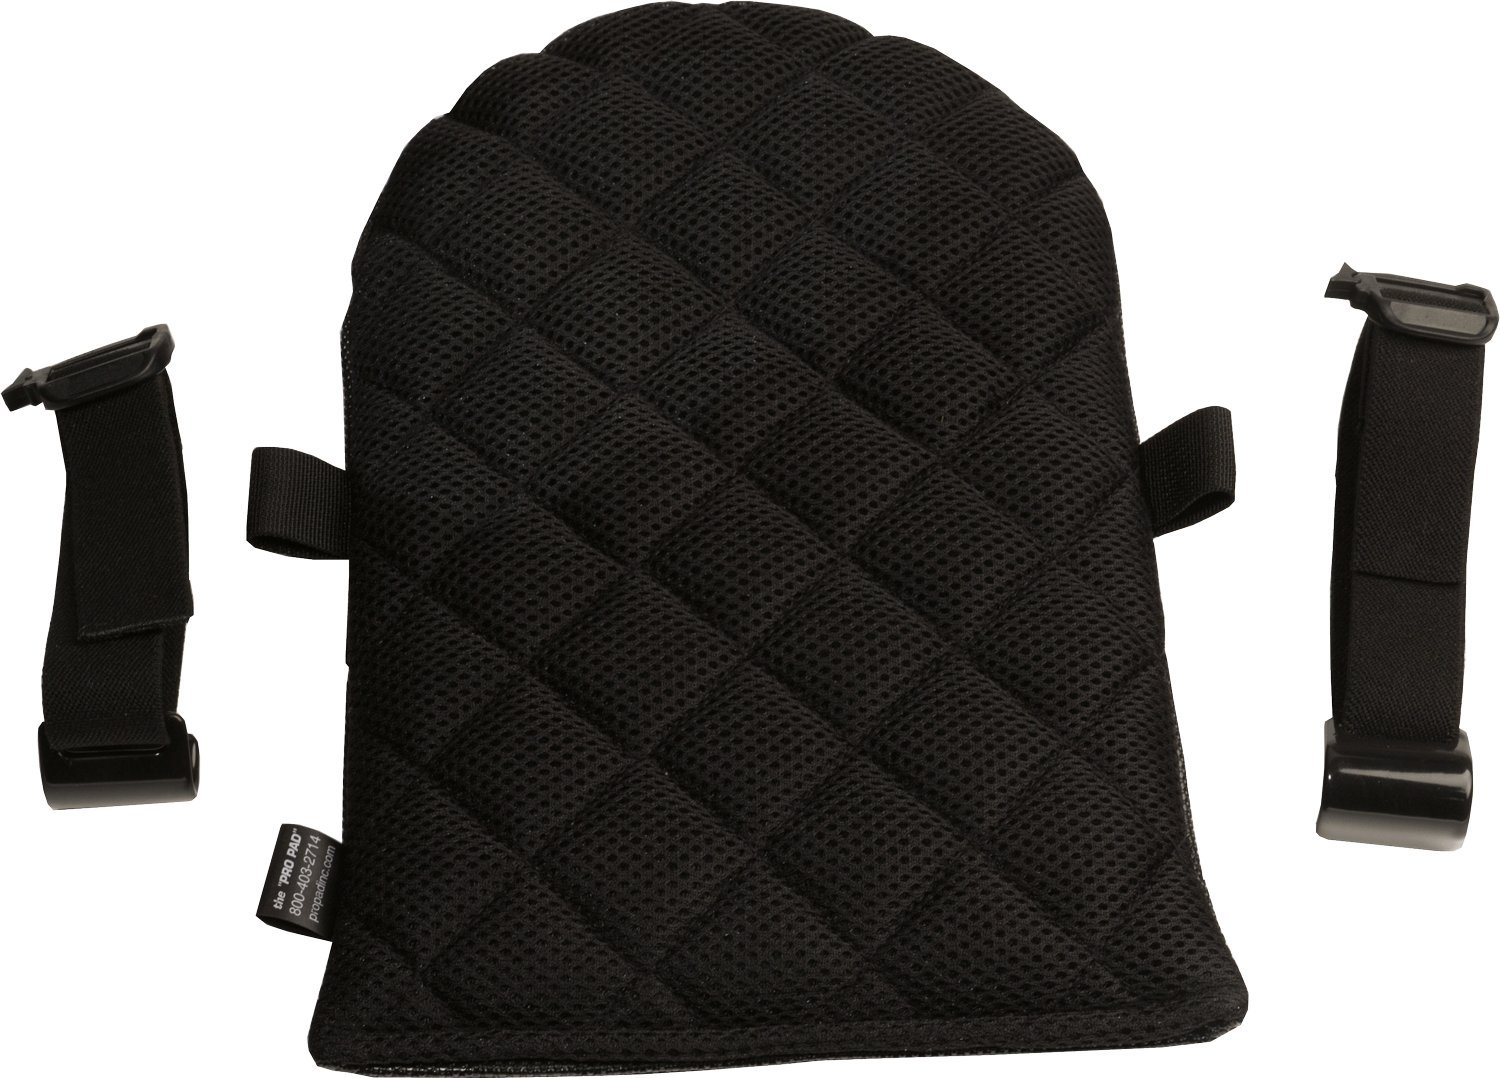 Pro Pad Quilted Diamond Mesh Small Gel Motorcyle Seat Pad